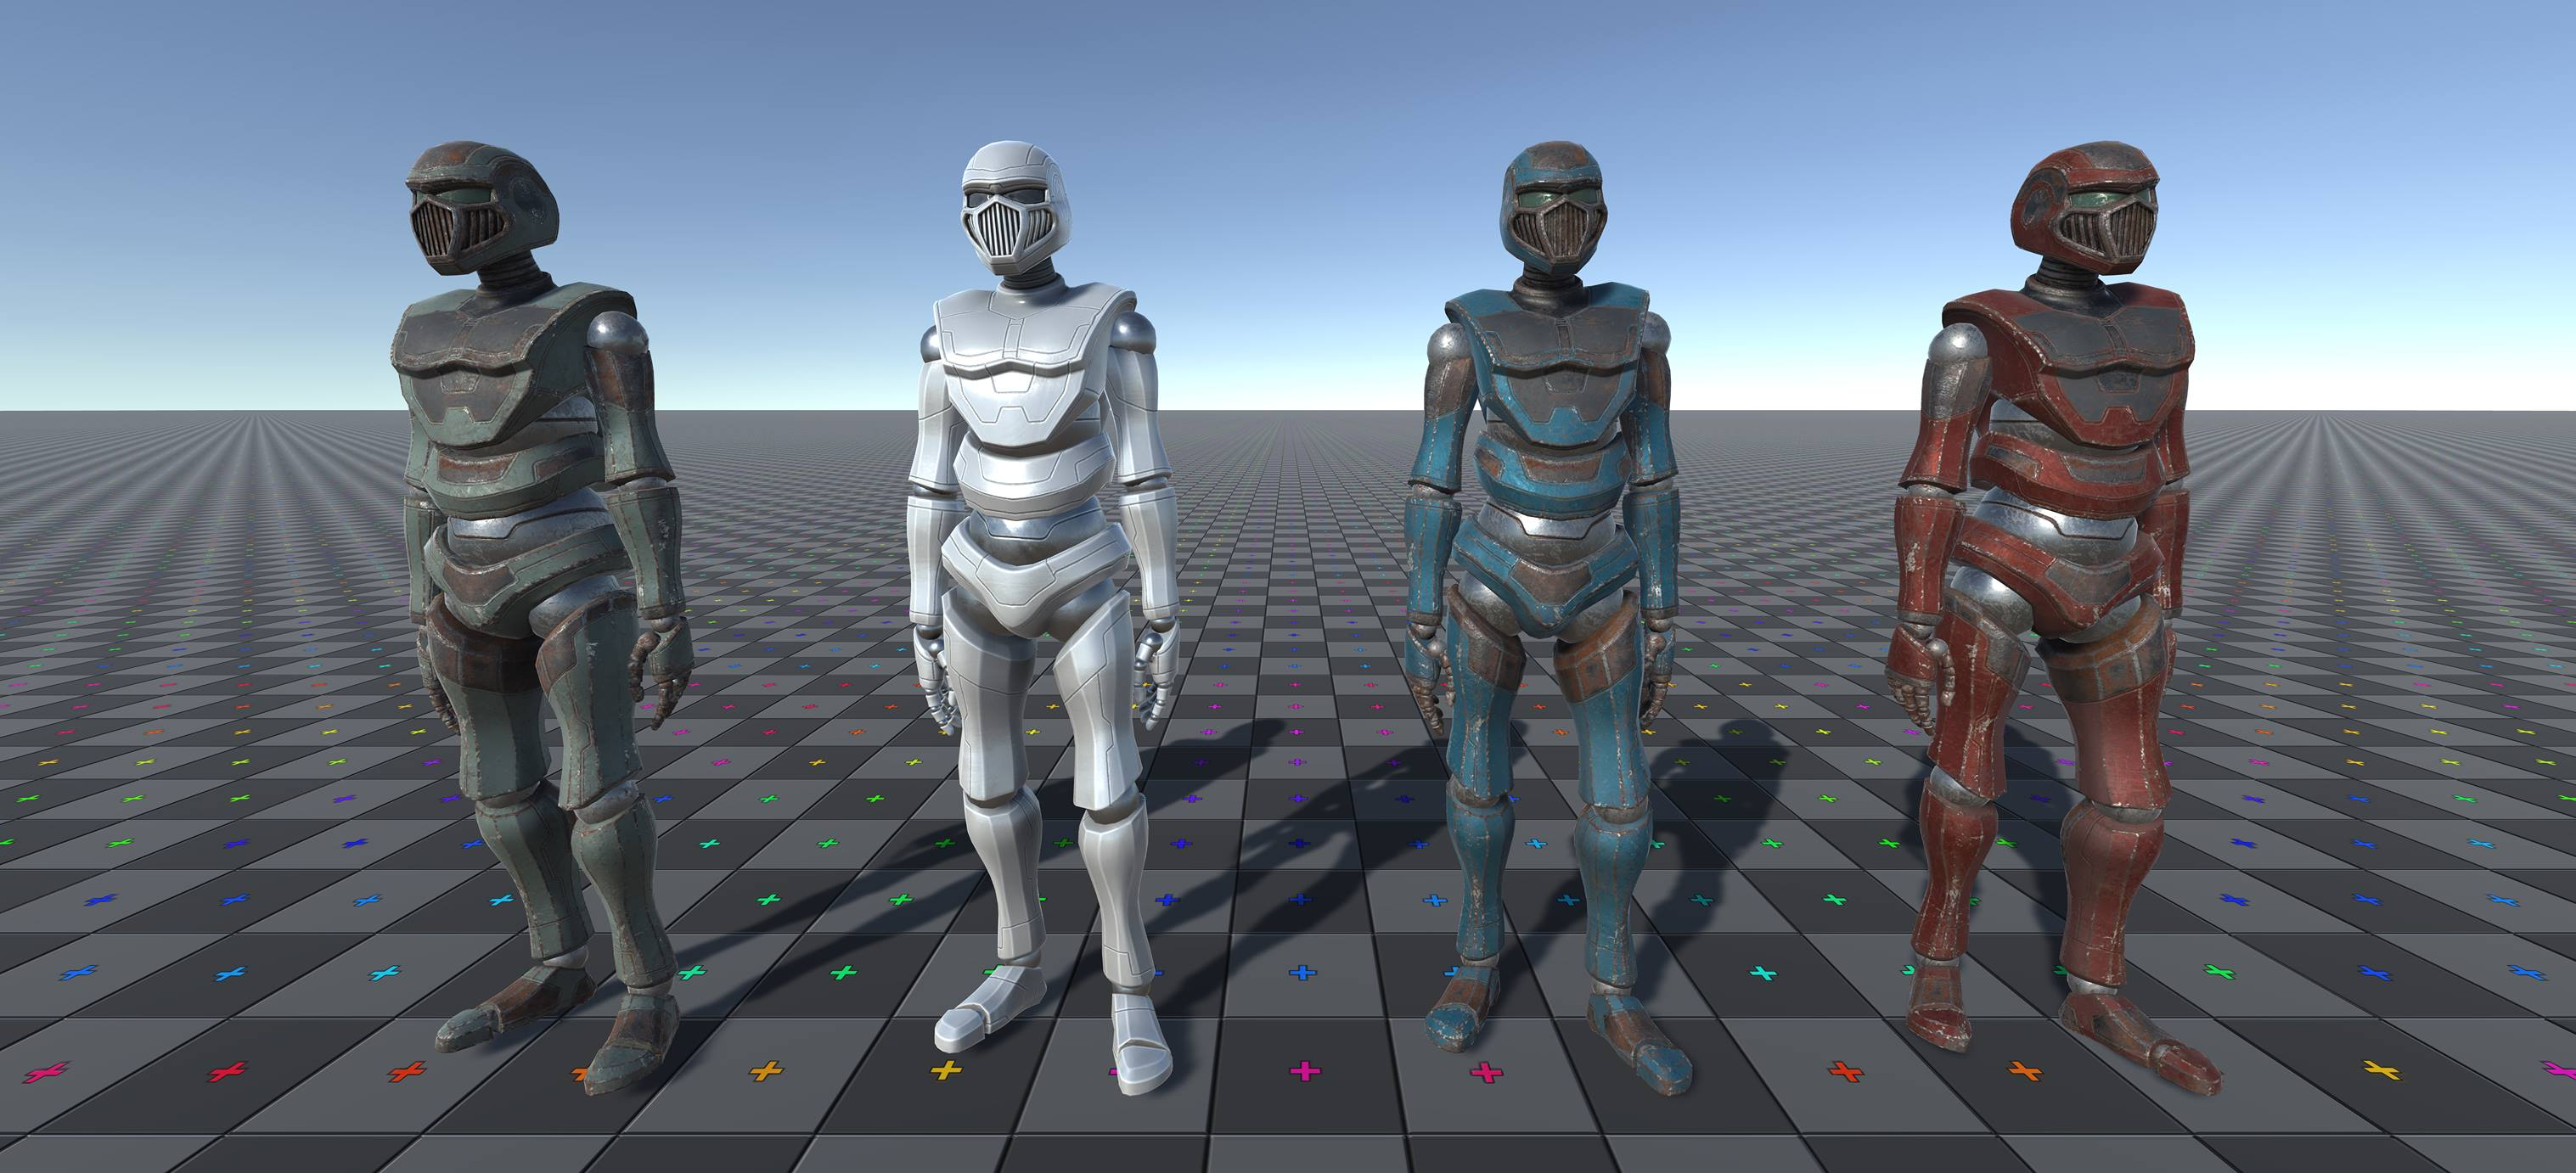 Rigged character for Unity 3rd person controller